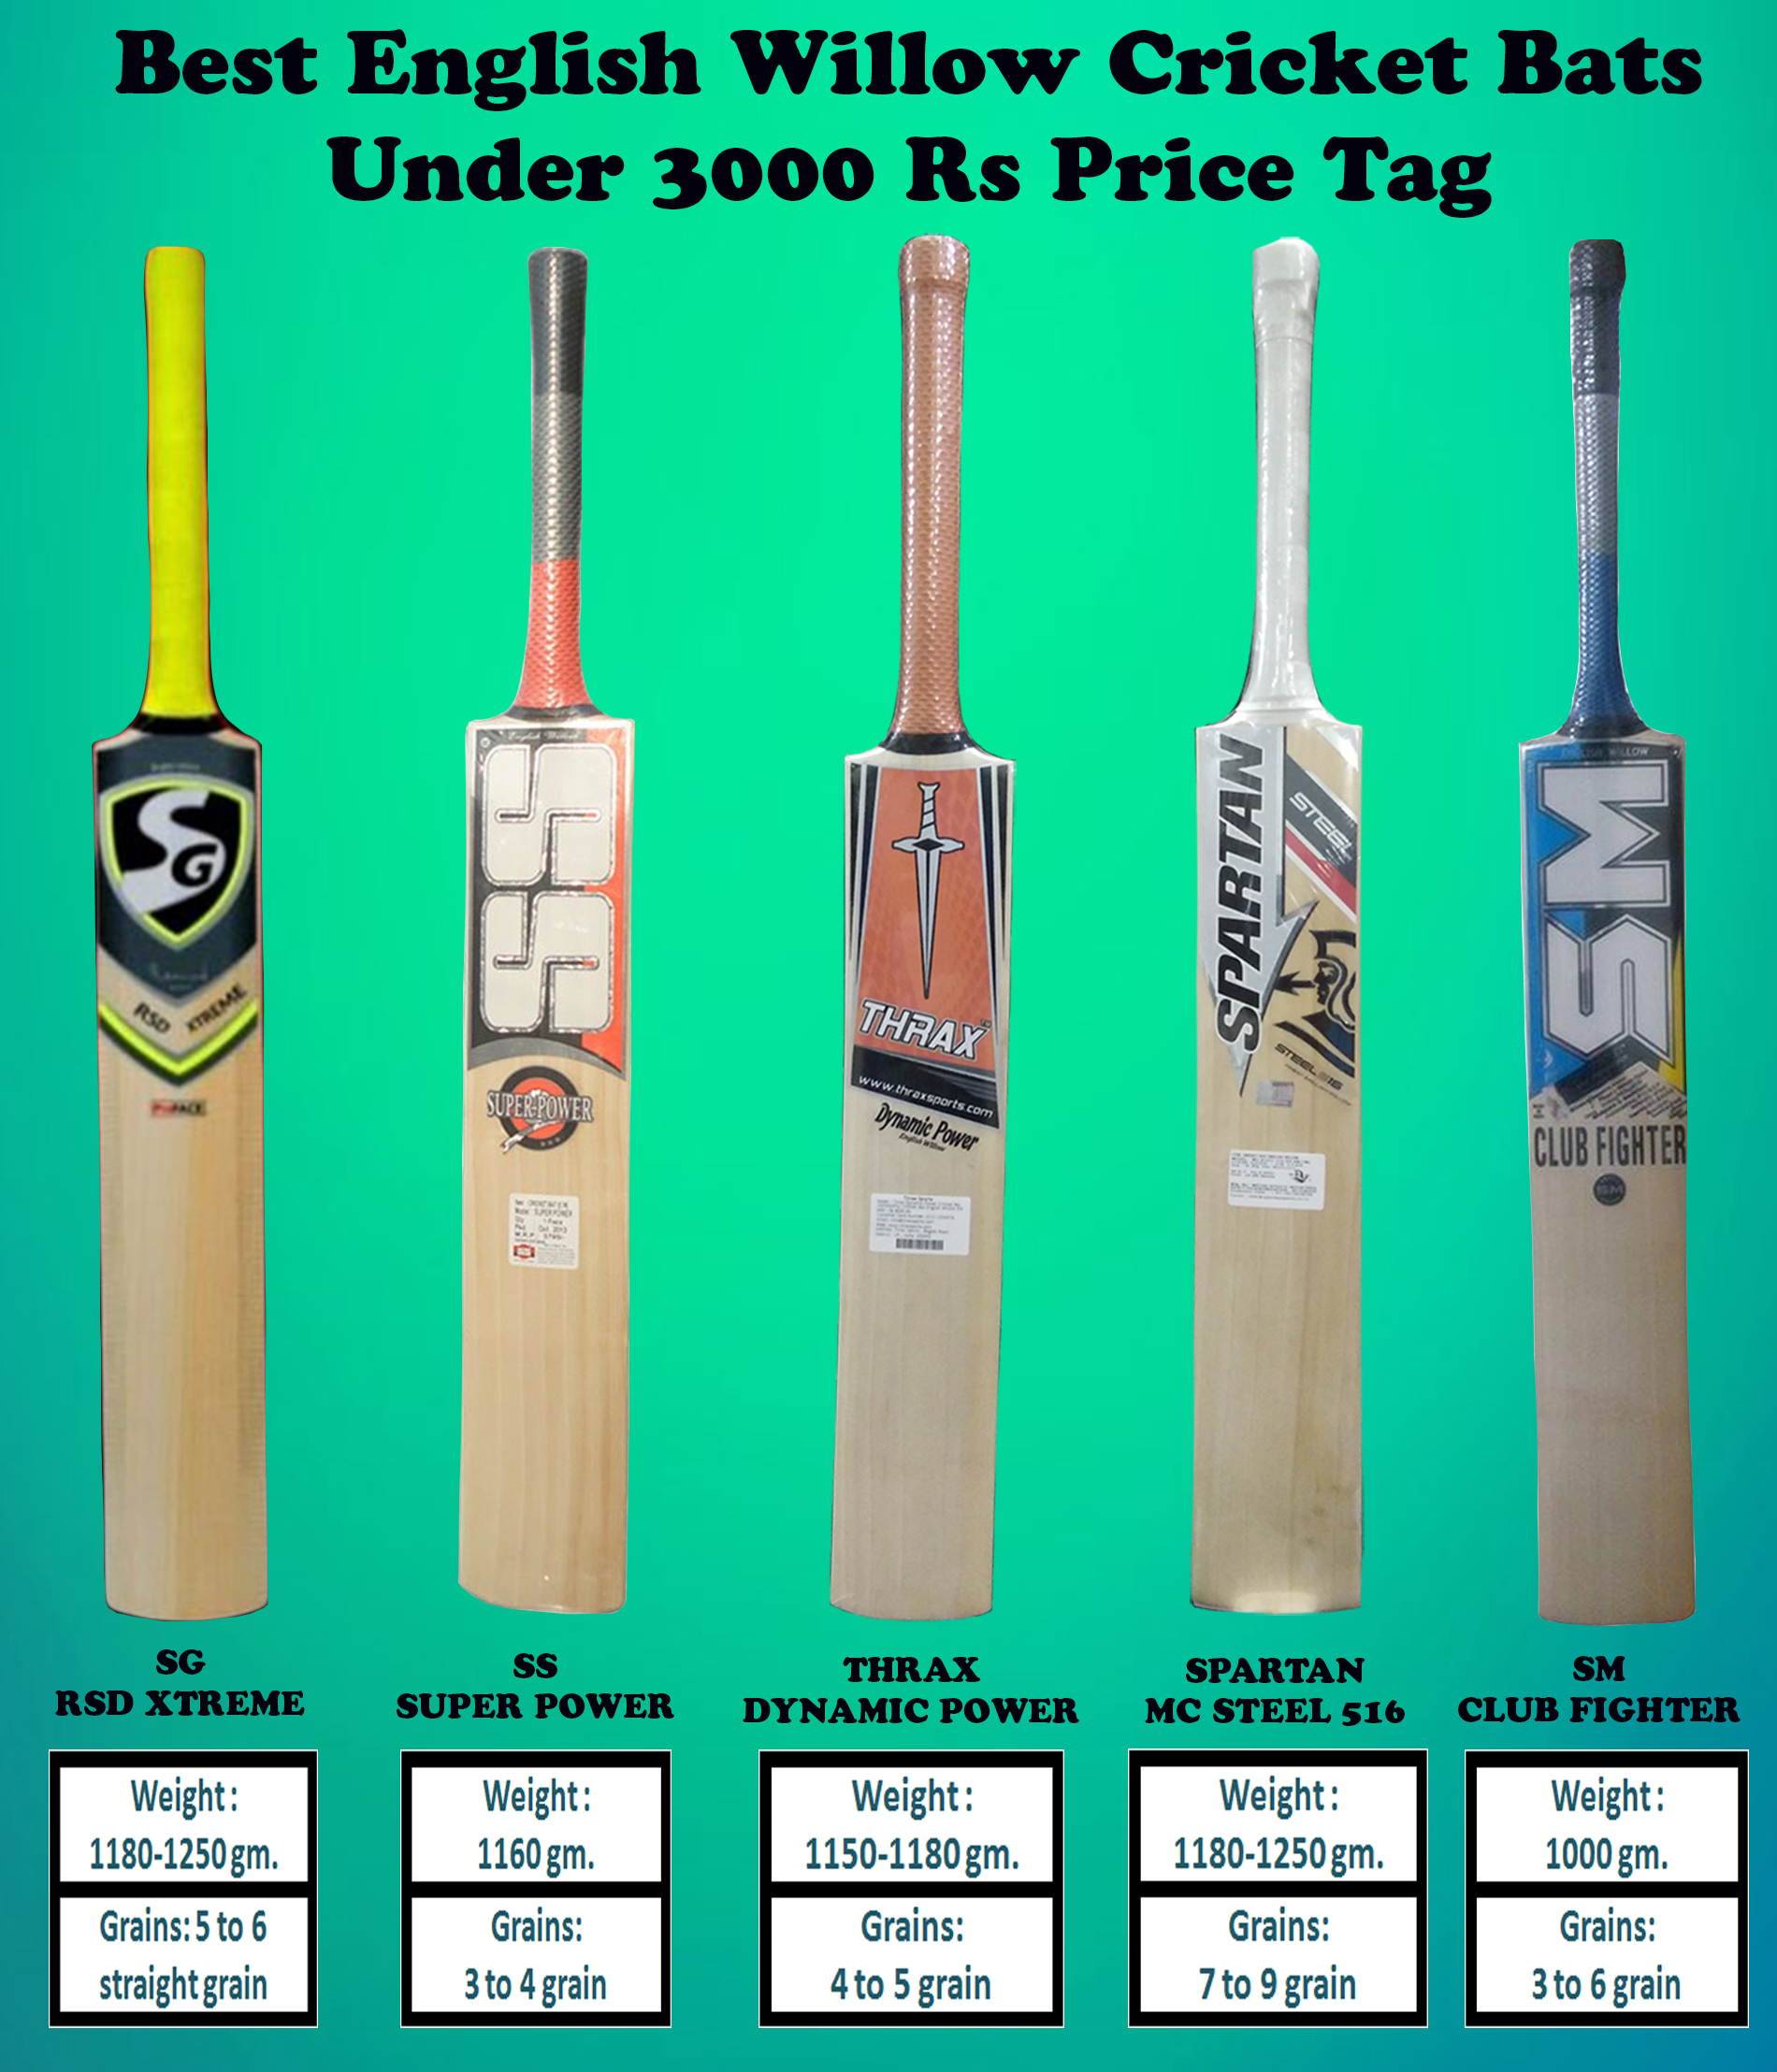 BEST ENGLISH WILLOW BATS UNDER 3000 RS